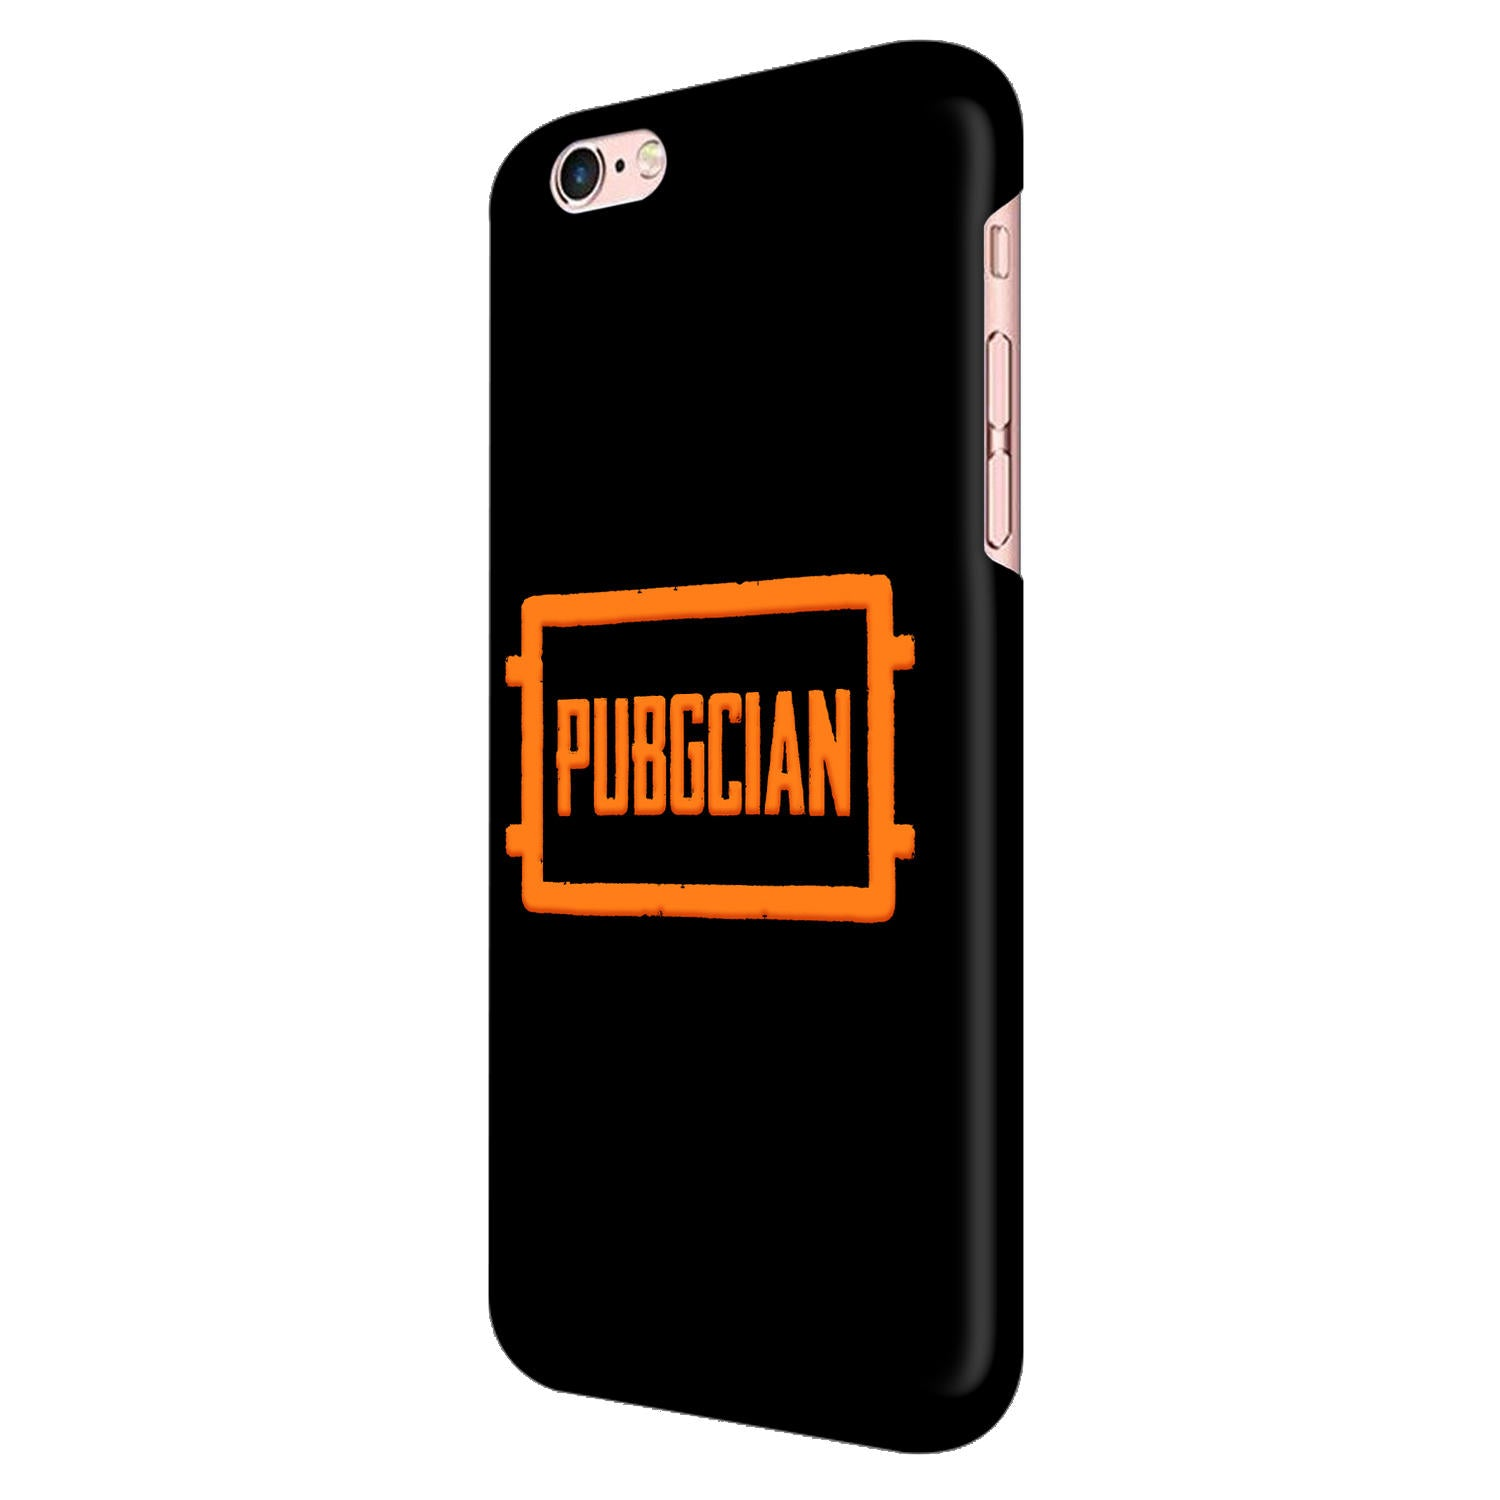 Pubgcian For Game Lovers iPhone 6 Mobile Cover Case - MADANYU